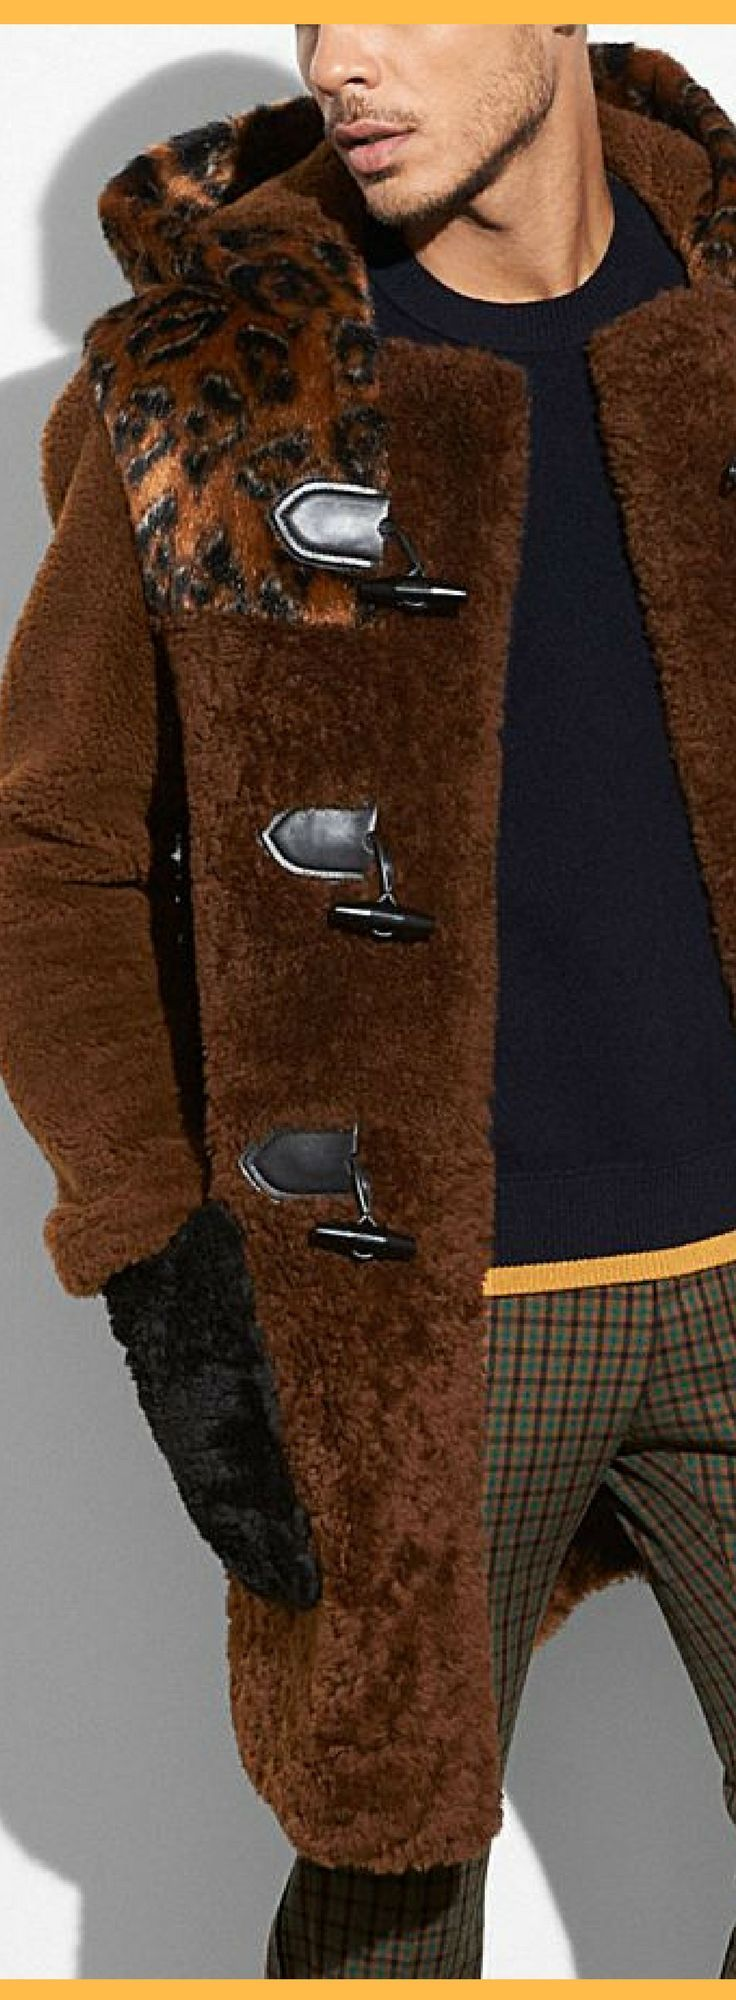 Gorgeous COACH Men's Shearling Mix Duffle Coat #coachcoat #men #menstyle #man #handsome #coach #menfashion